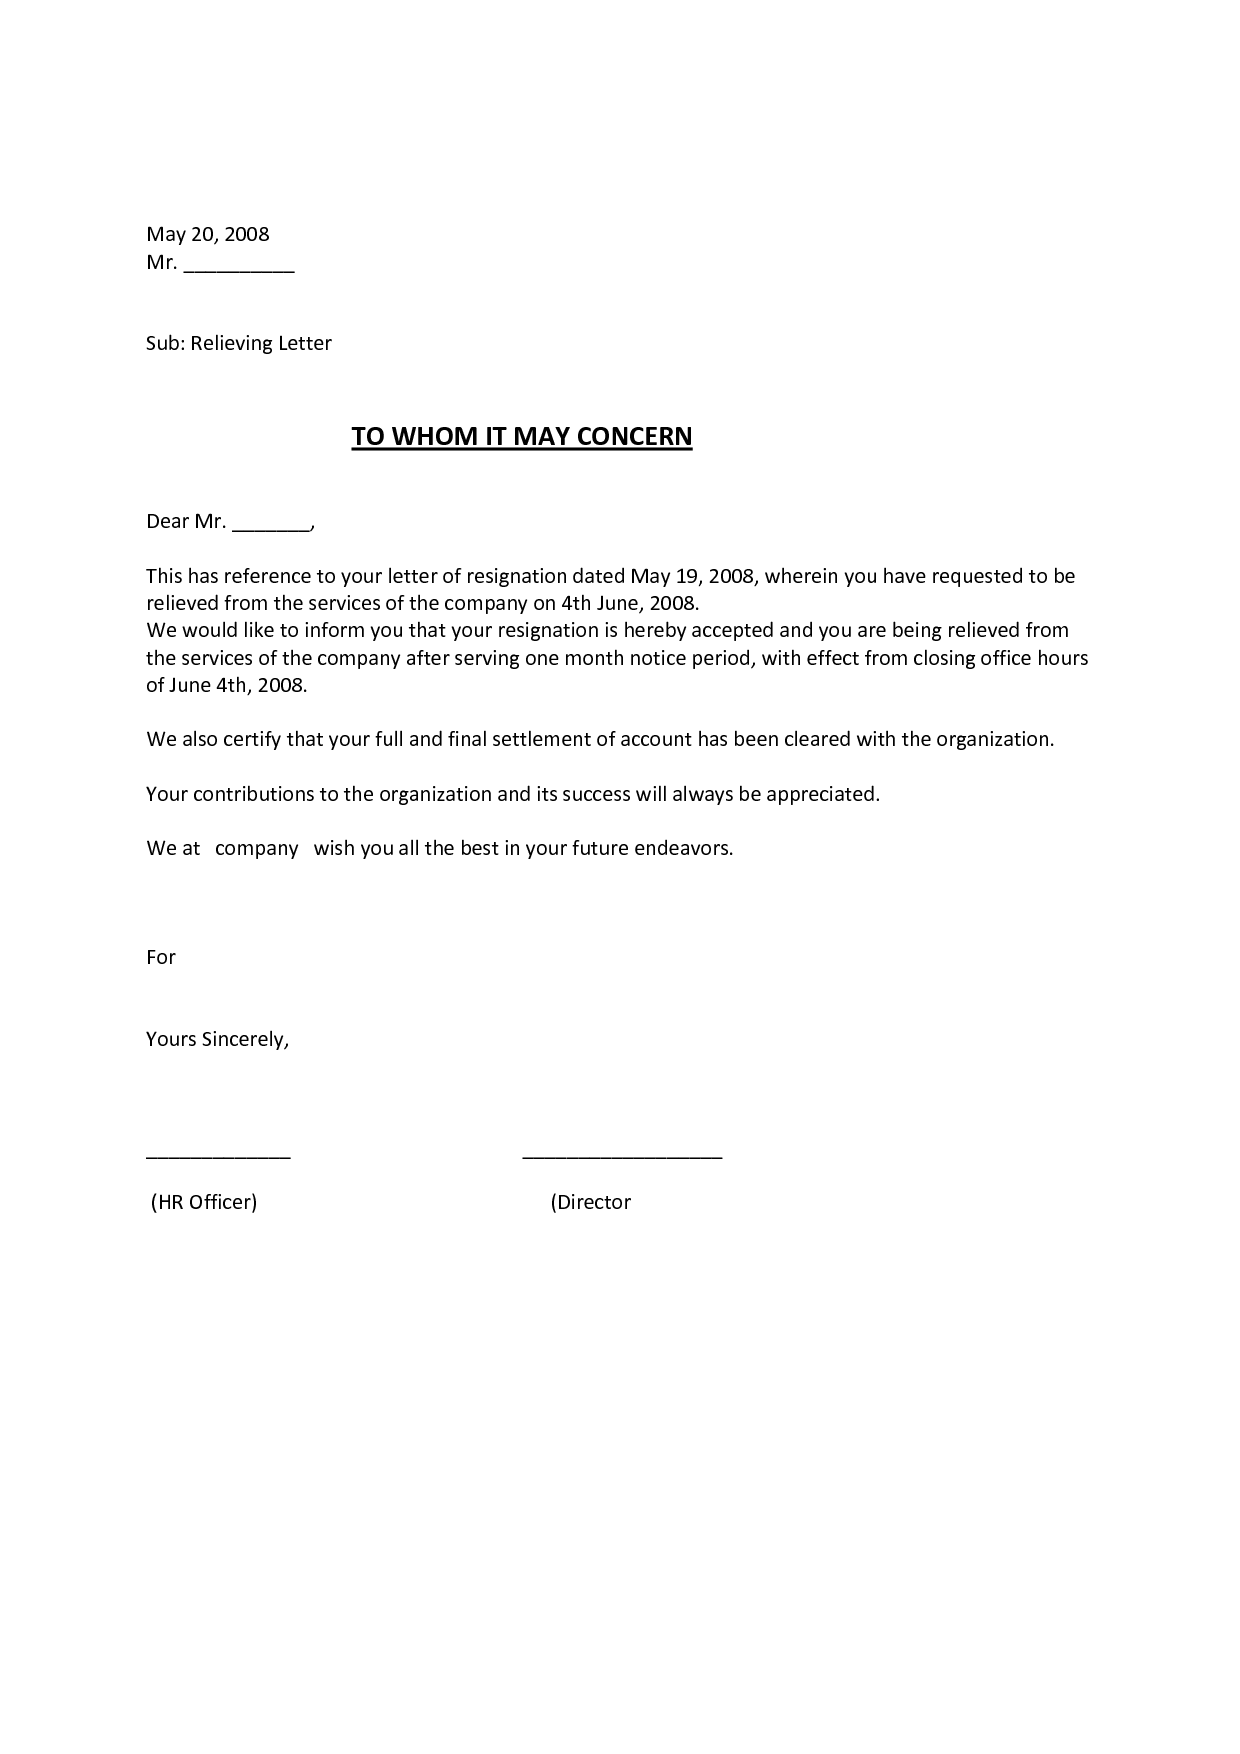 Relieving Letter Format For Employee Free Download  Aba